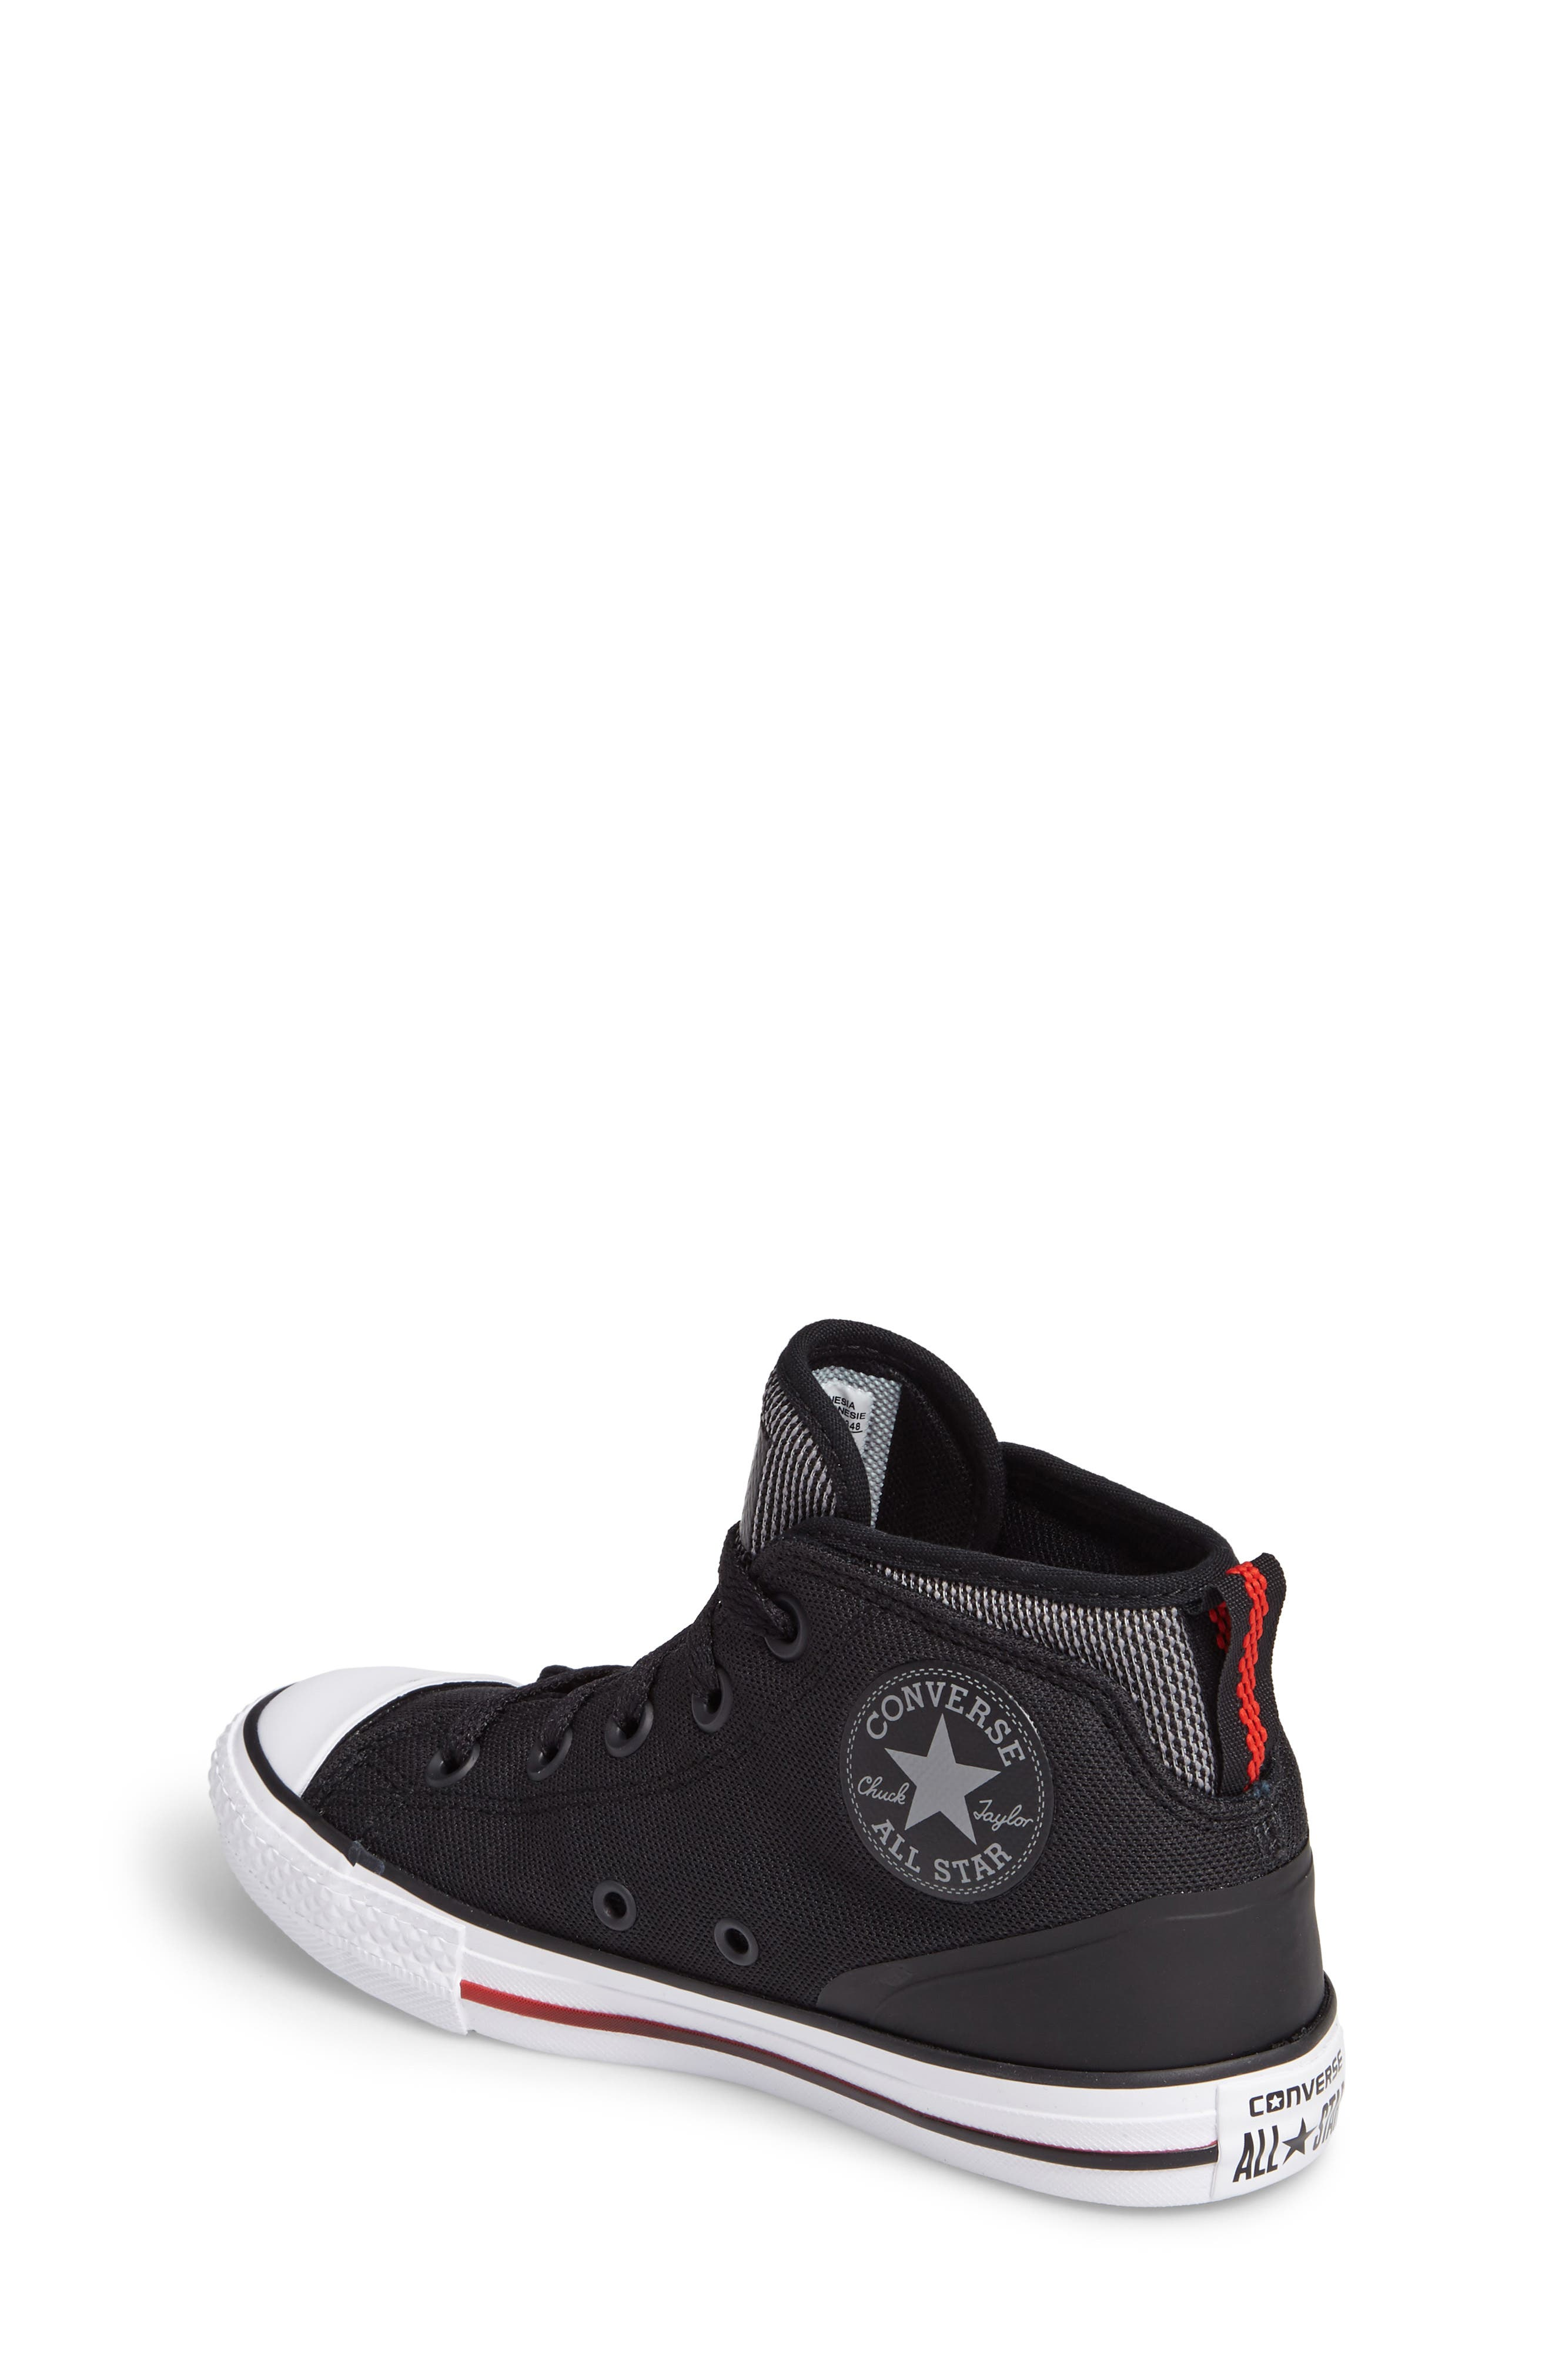 Chuck Taylor<sup>®</sup> All Star<sup>®</sup> Syde Street High Top Sneaker,                             Alternate thumbnail 4, color,